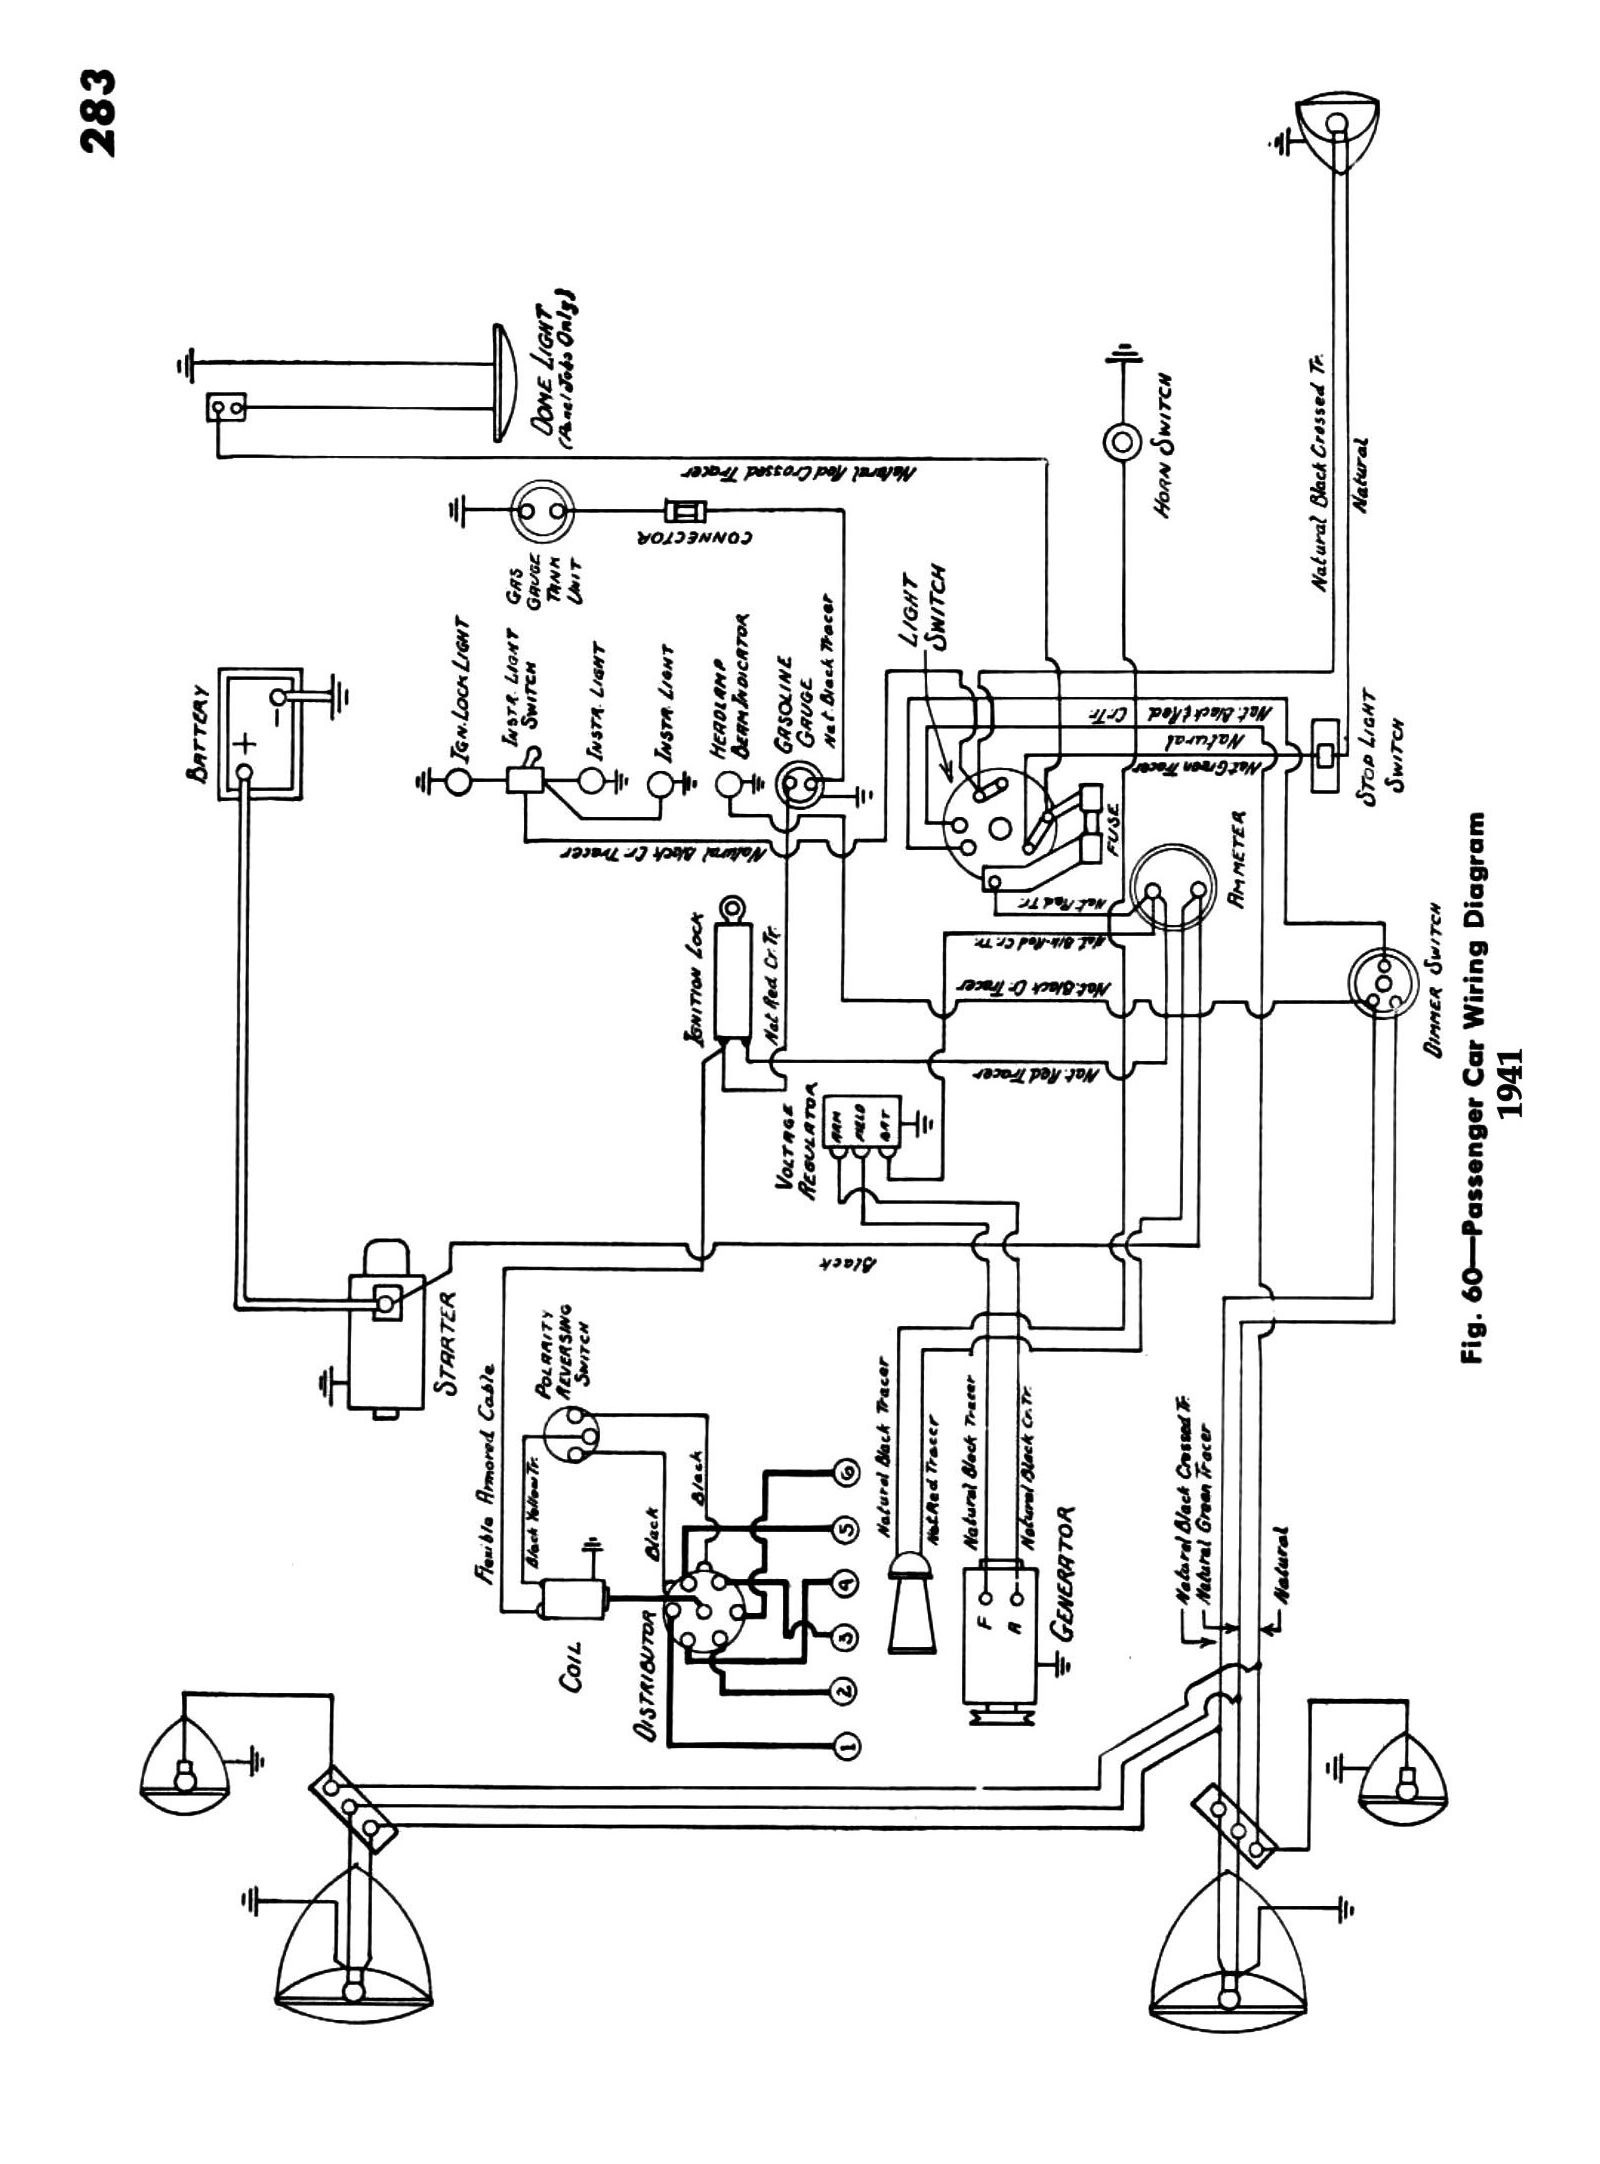 Car Dimmer Switch Wiring Diagram Chevy Wiring Diagrams Of Car Dimmer Switch Wiring Diagram